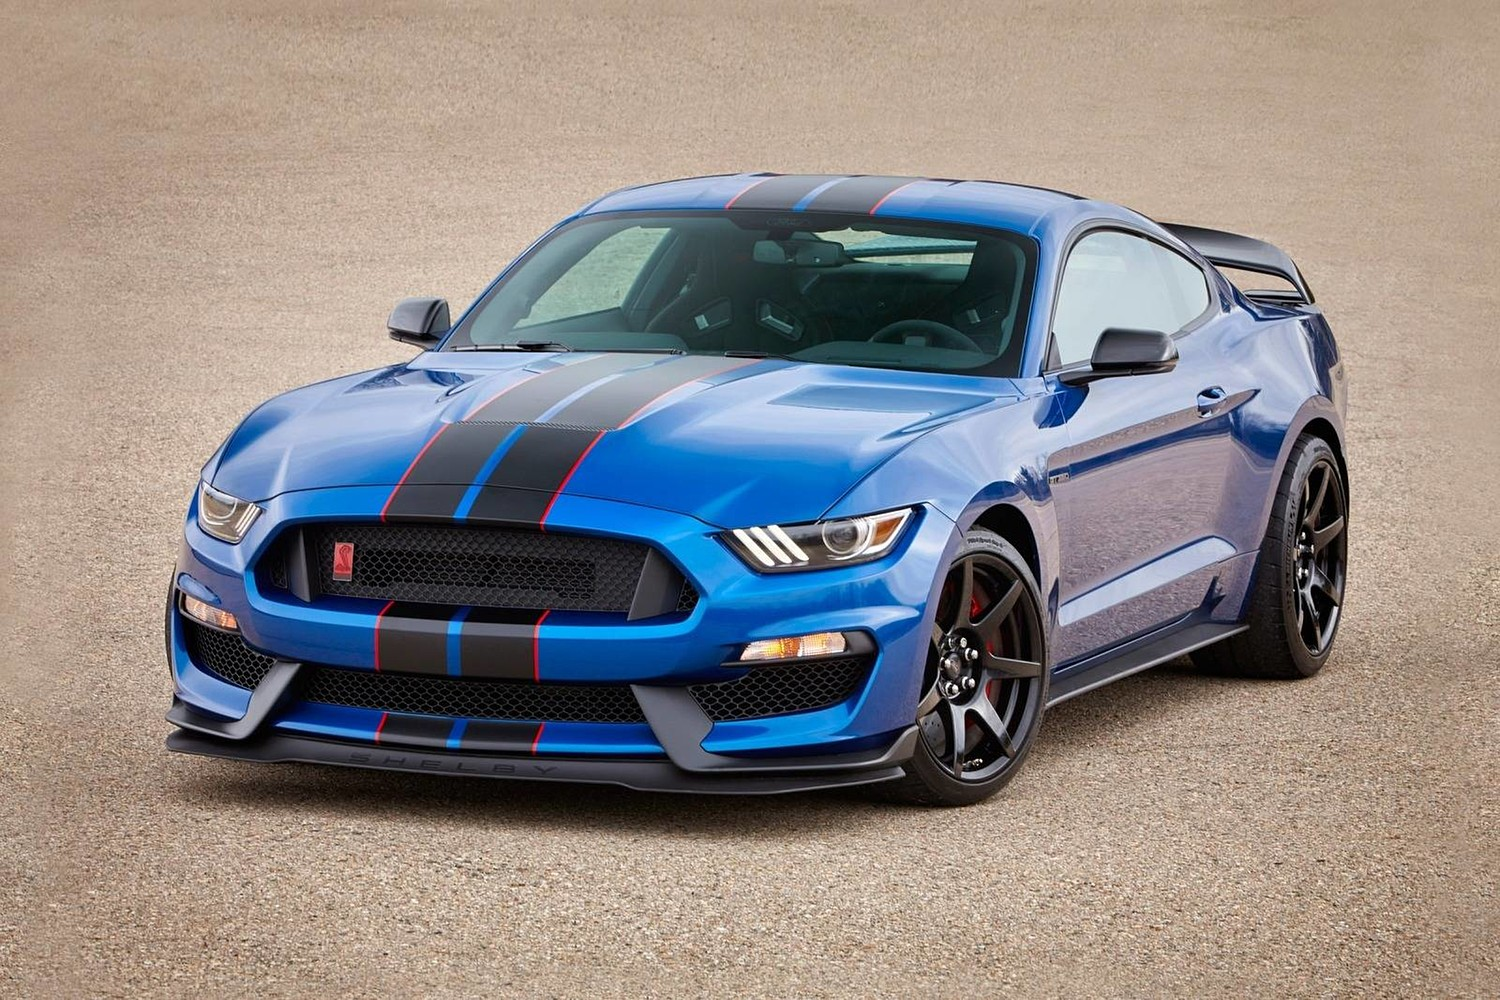 Ford shelby gt350 r coupe exterior